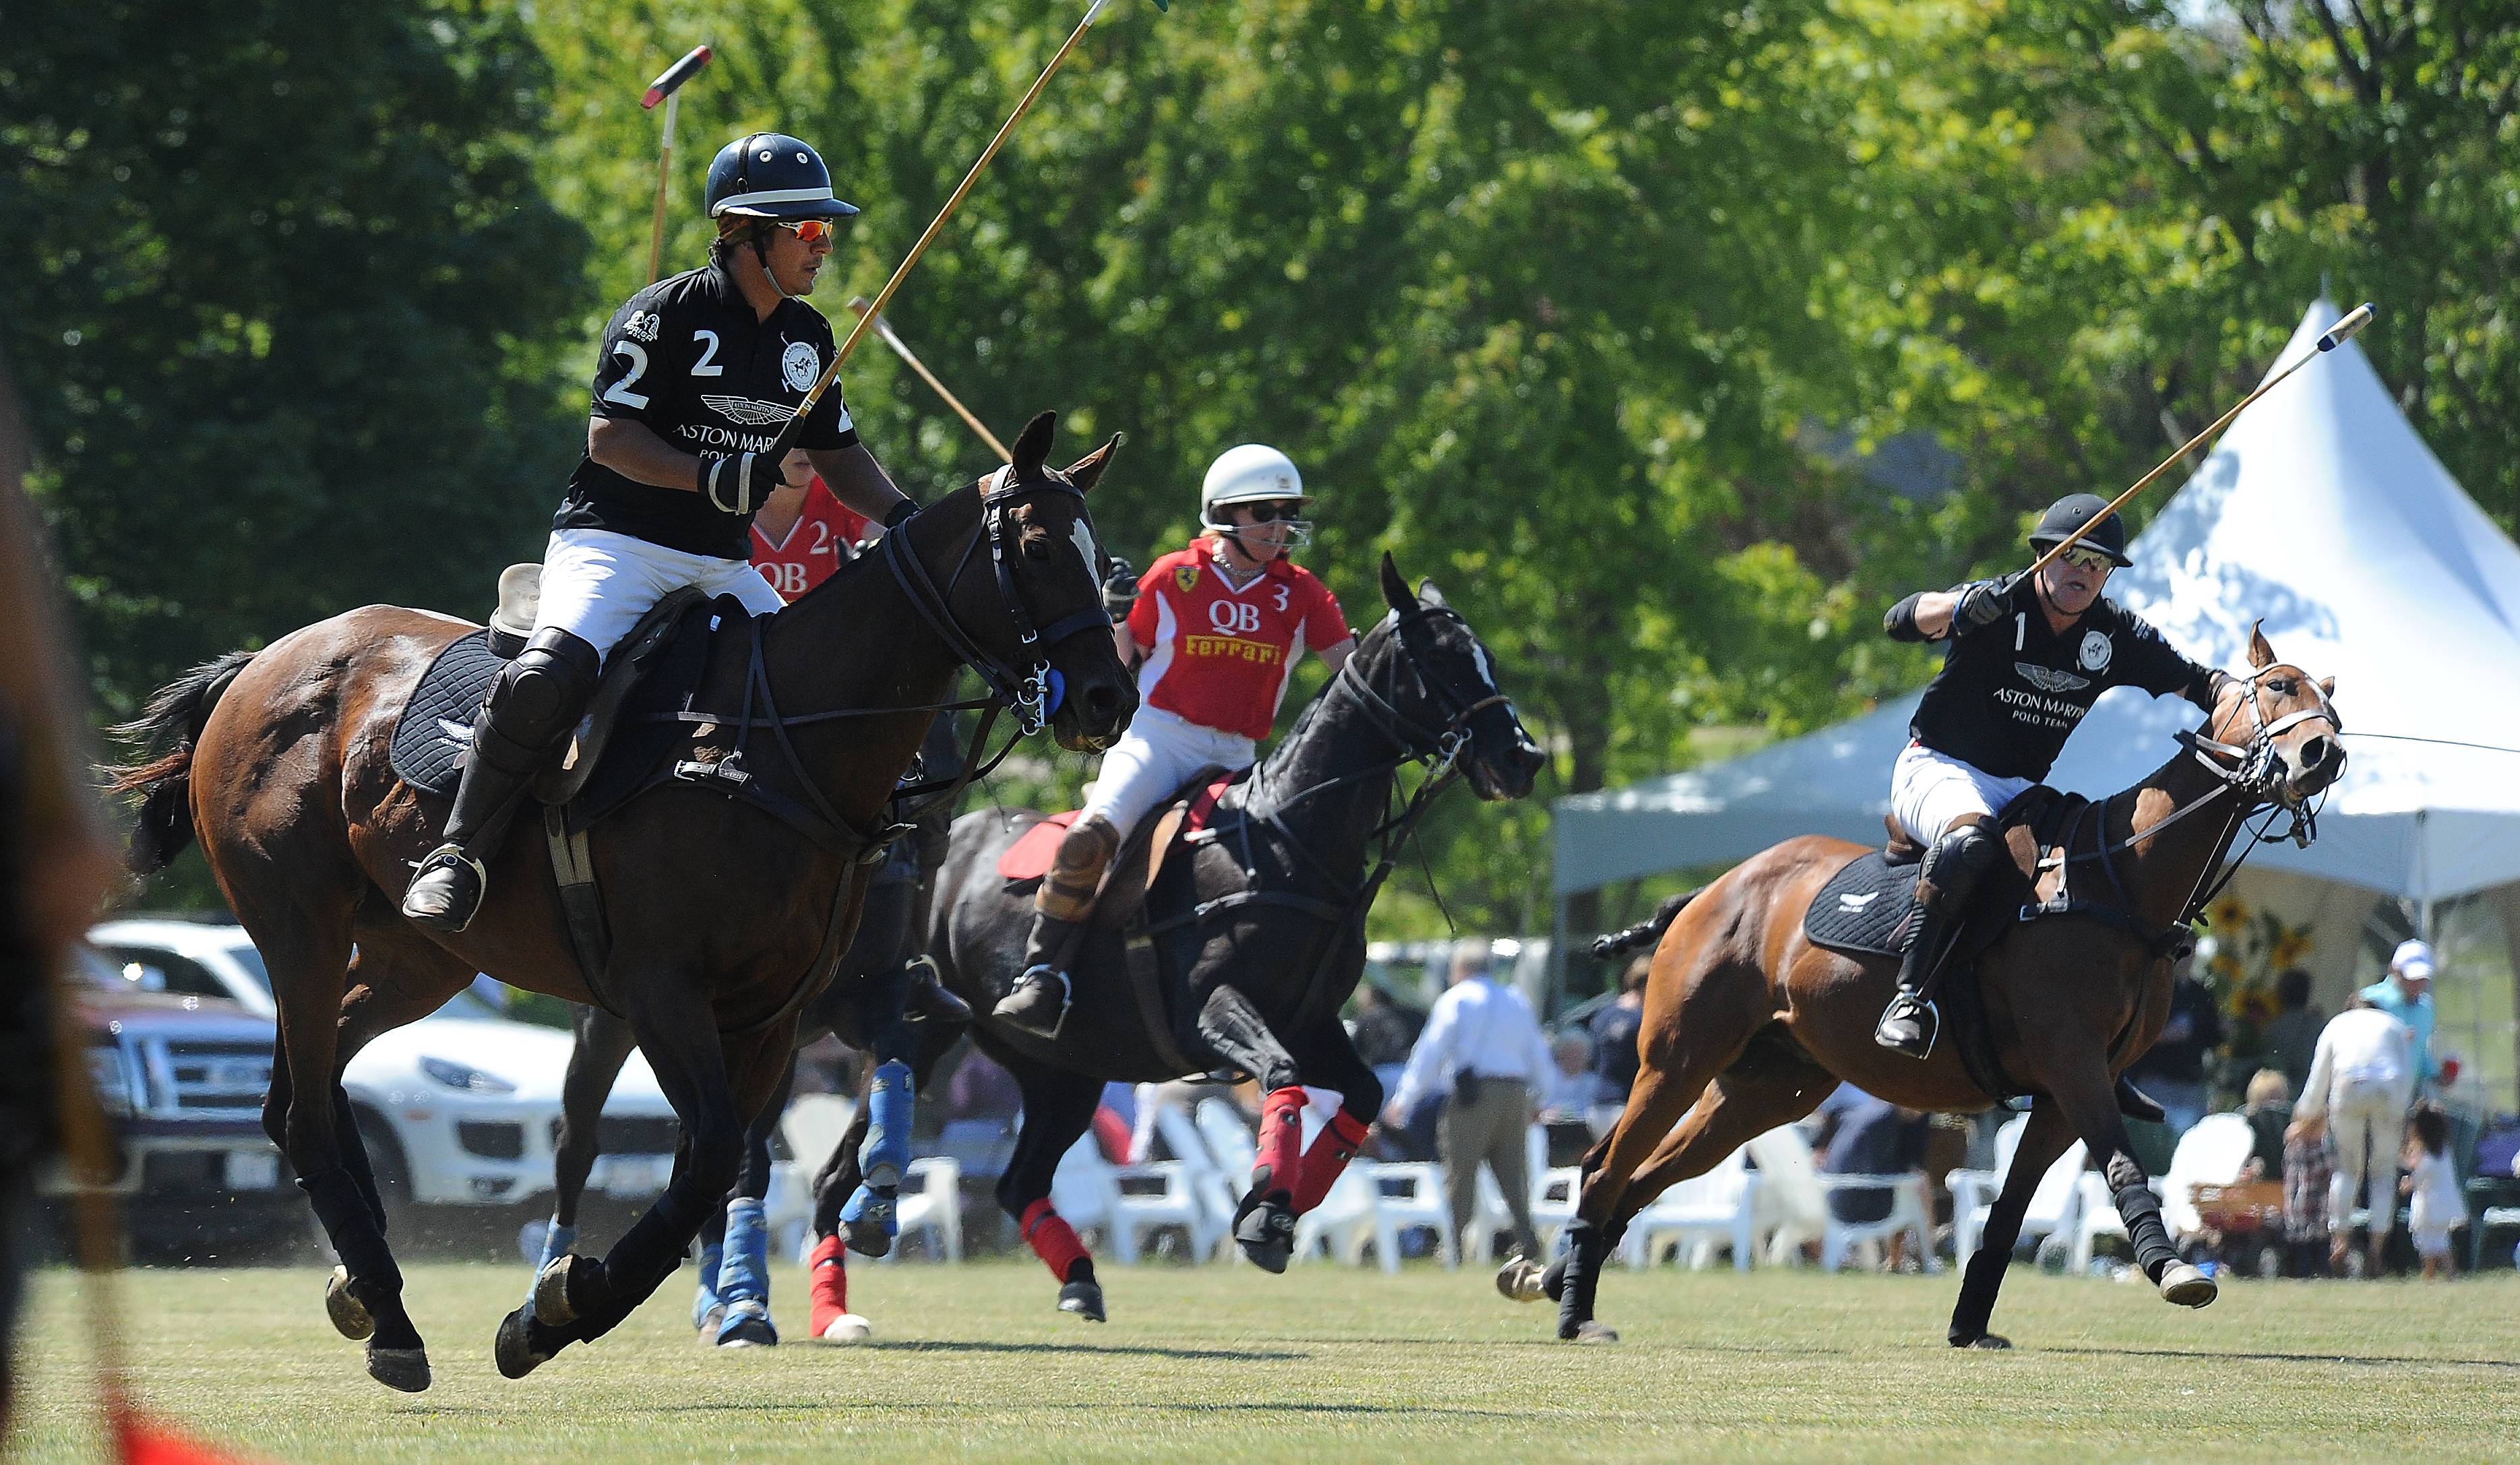 The Aston Martin Polo Team (men) and the Quintessential Barrington Polo Team (women) play at the 13th annual LeCompte Kalaway Trailowners Cup Polo Event in Barrington Hills.